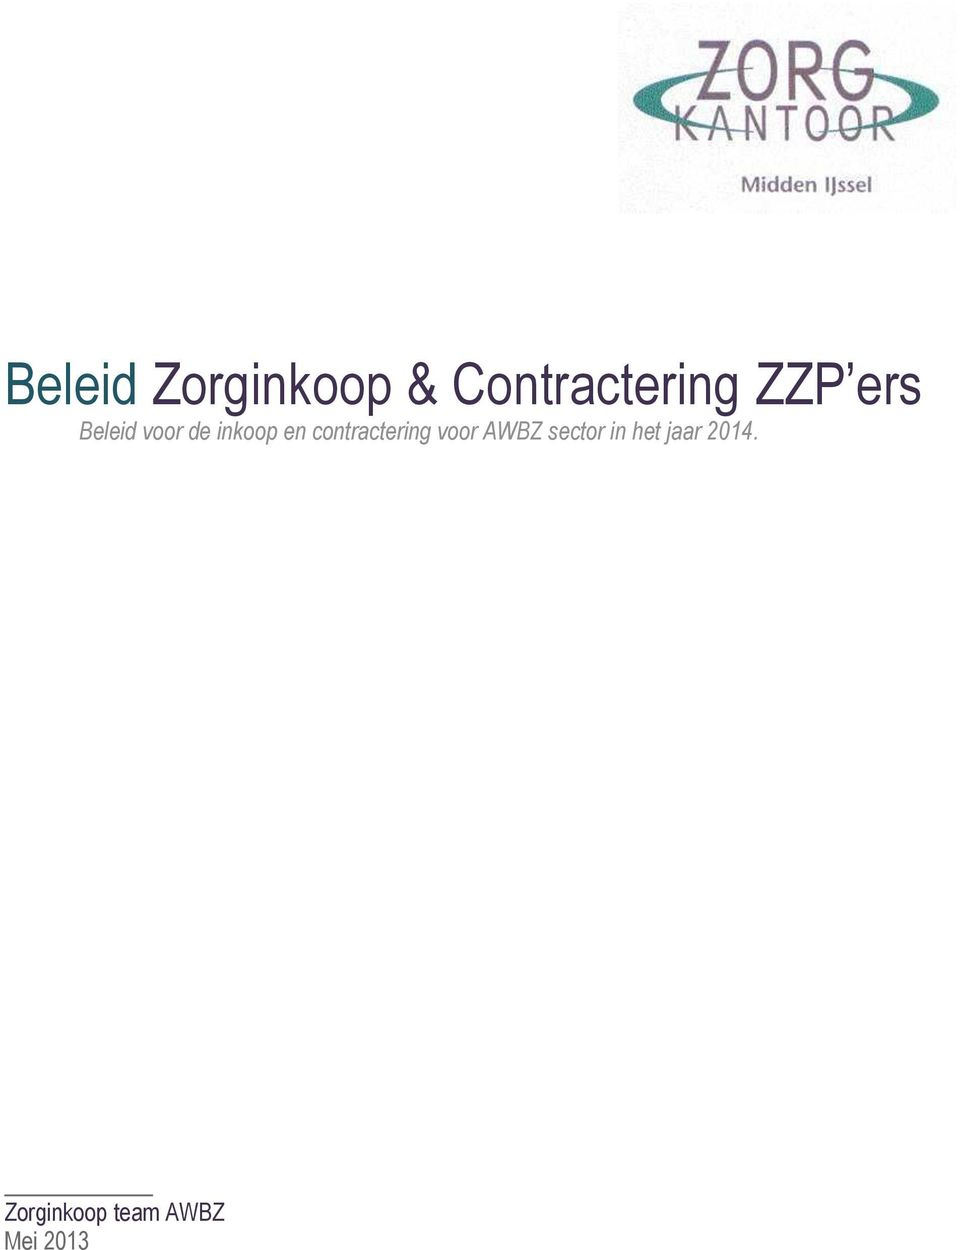 contractering voor AWBZ sector in